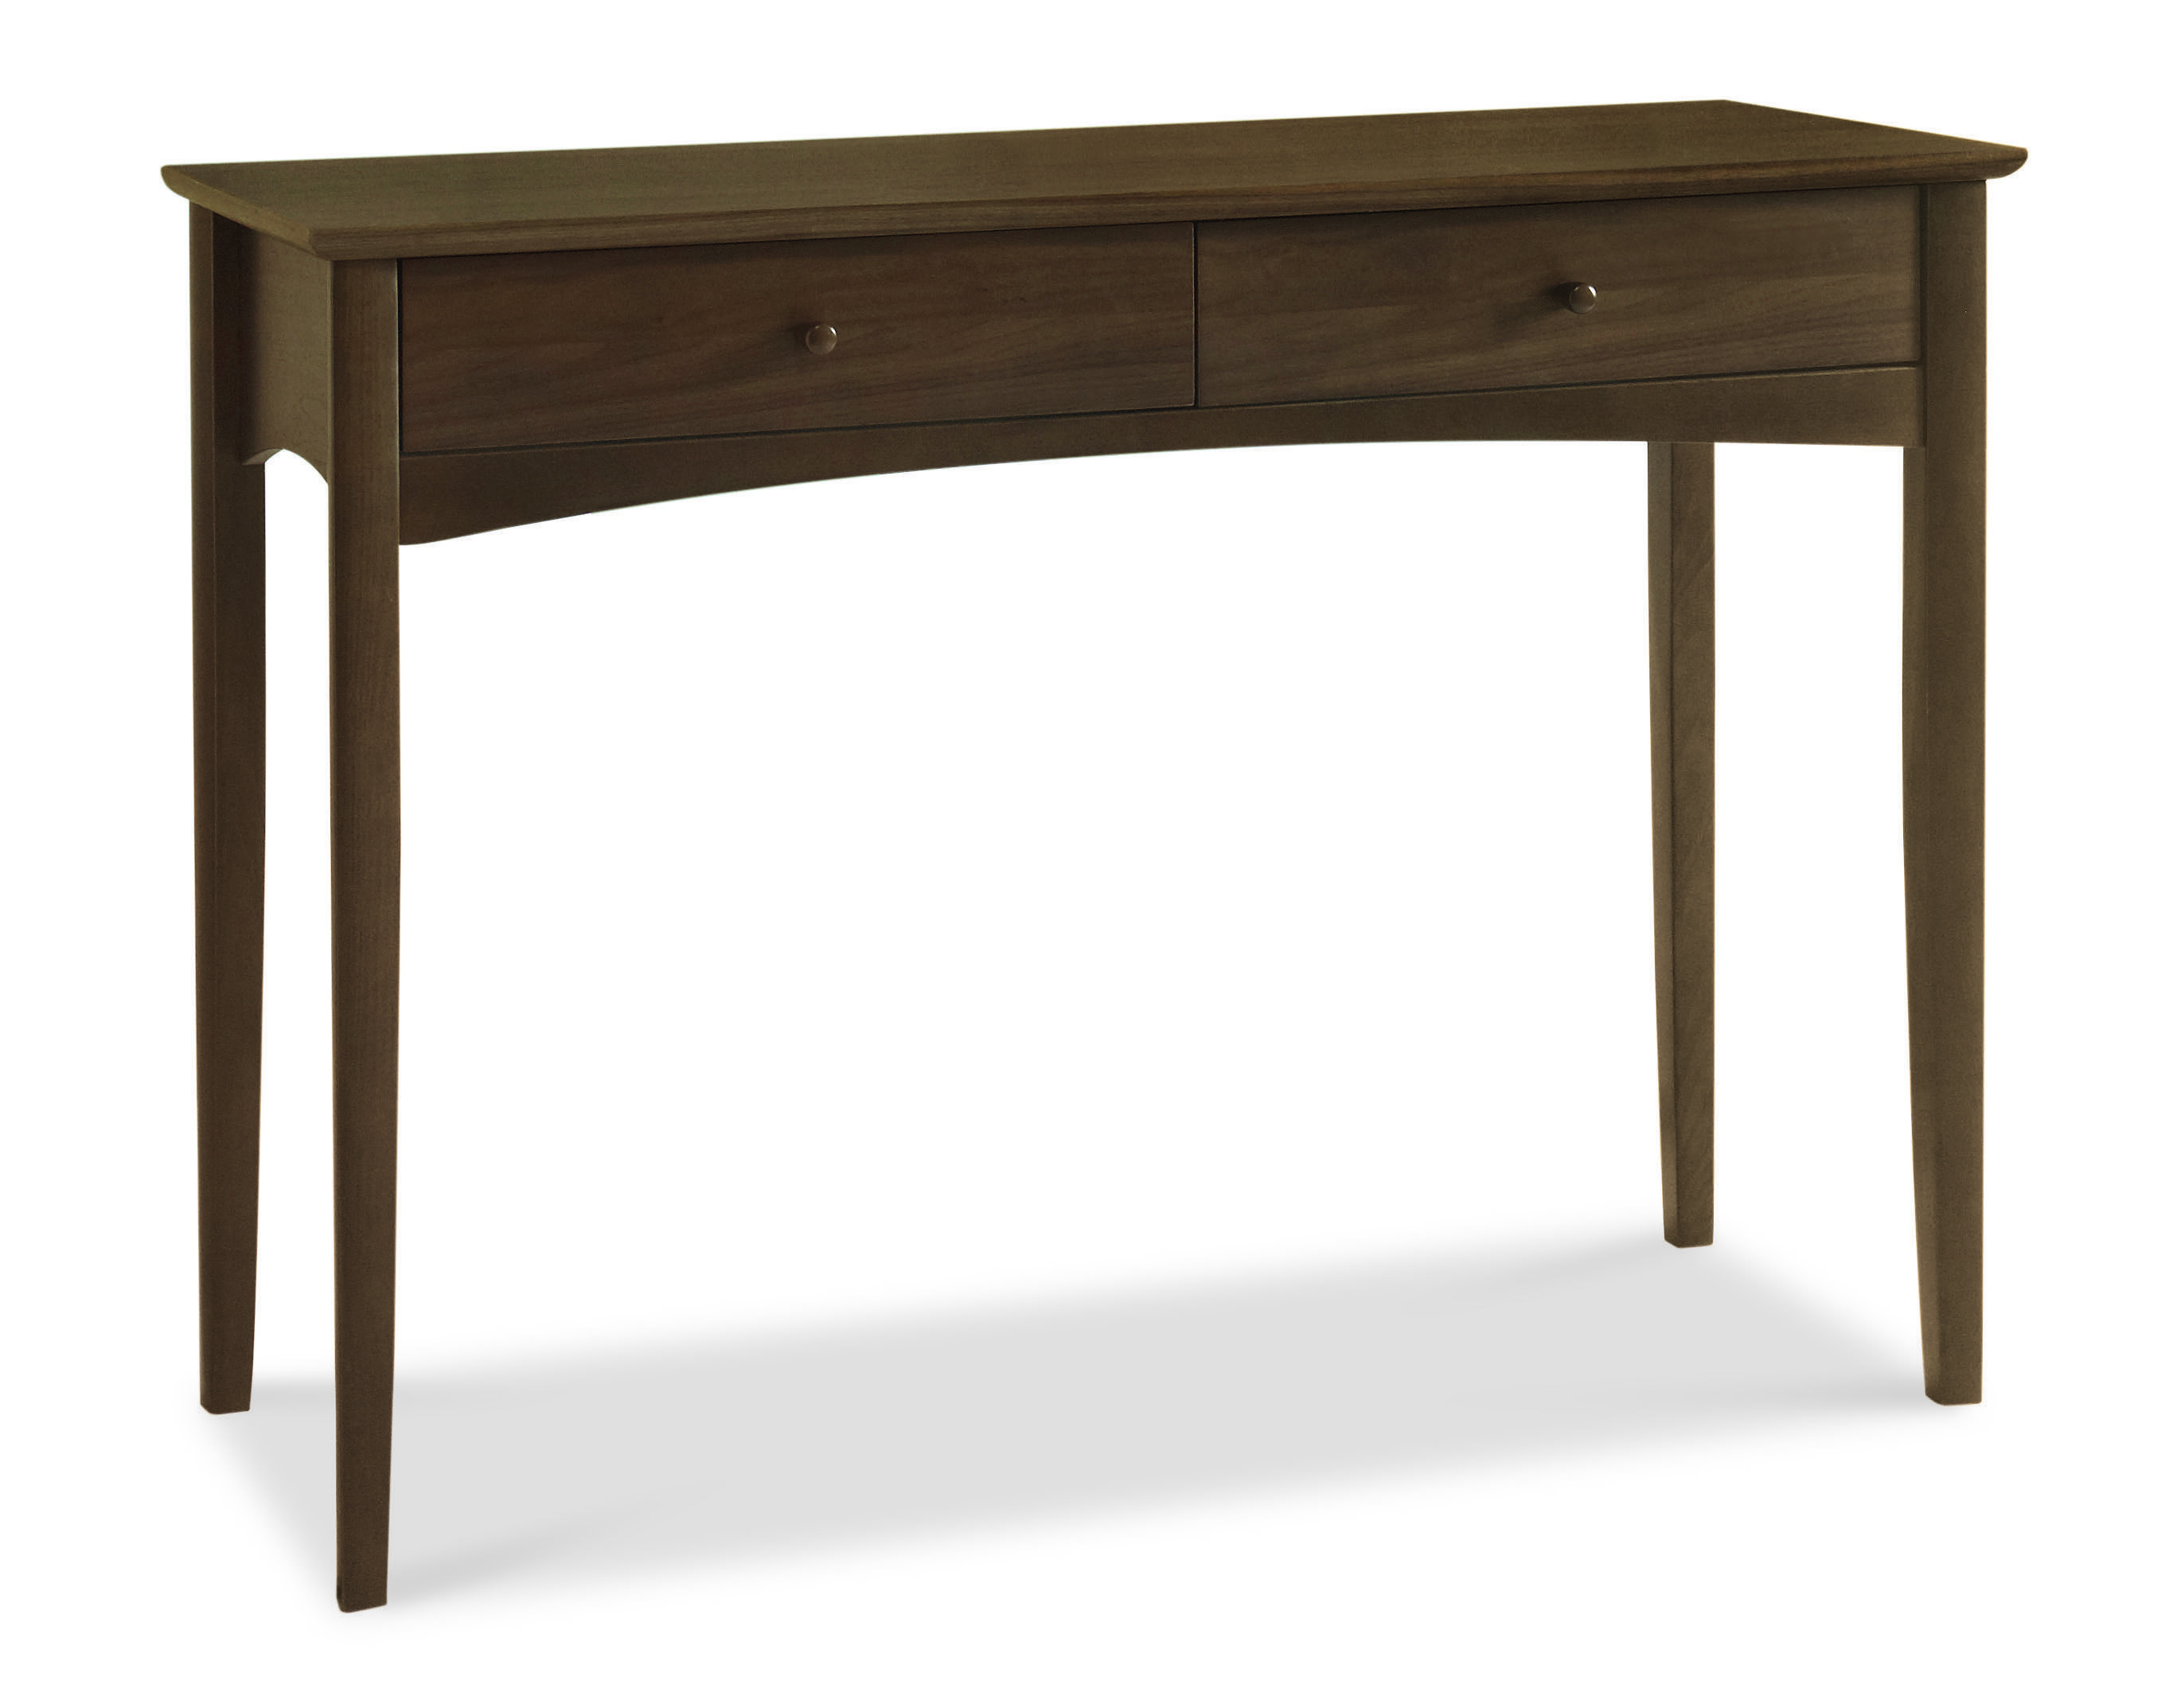 Buy dressing tables by evok online dressing tables dressing tables - Warwick Dressing Table Furniture Instant Home